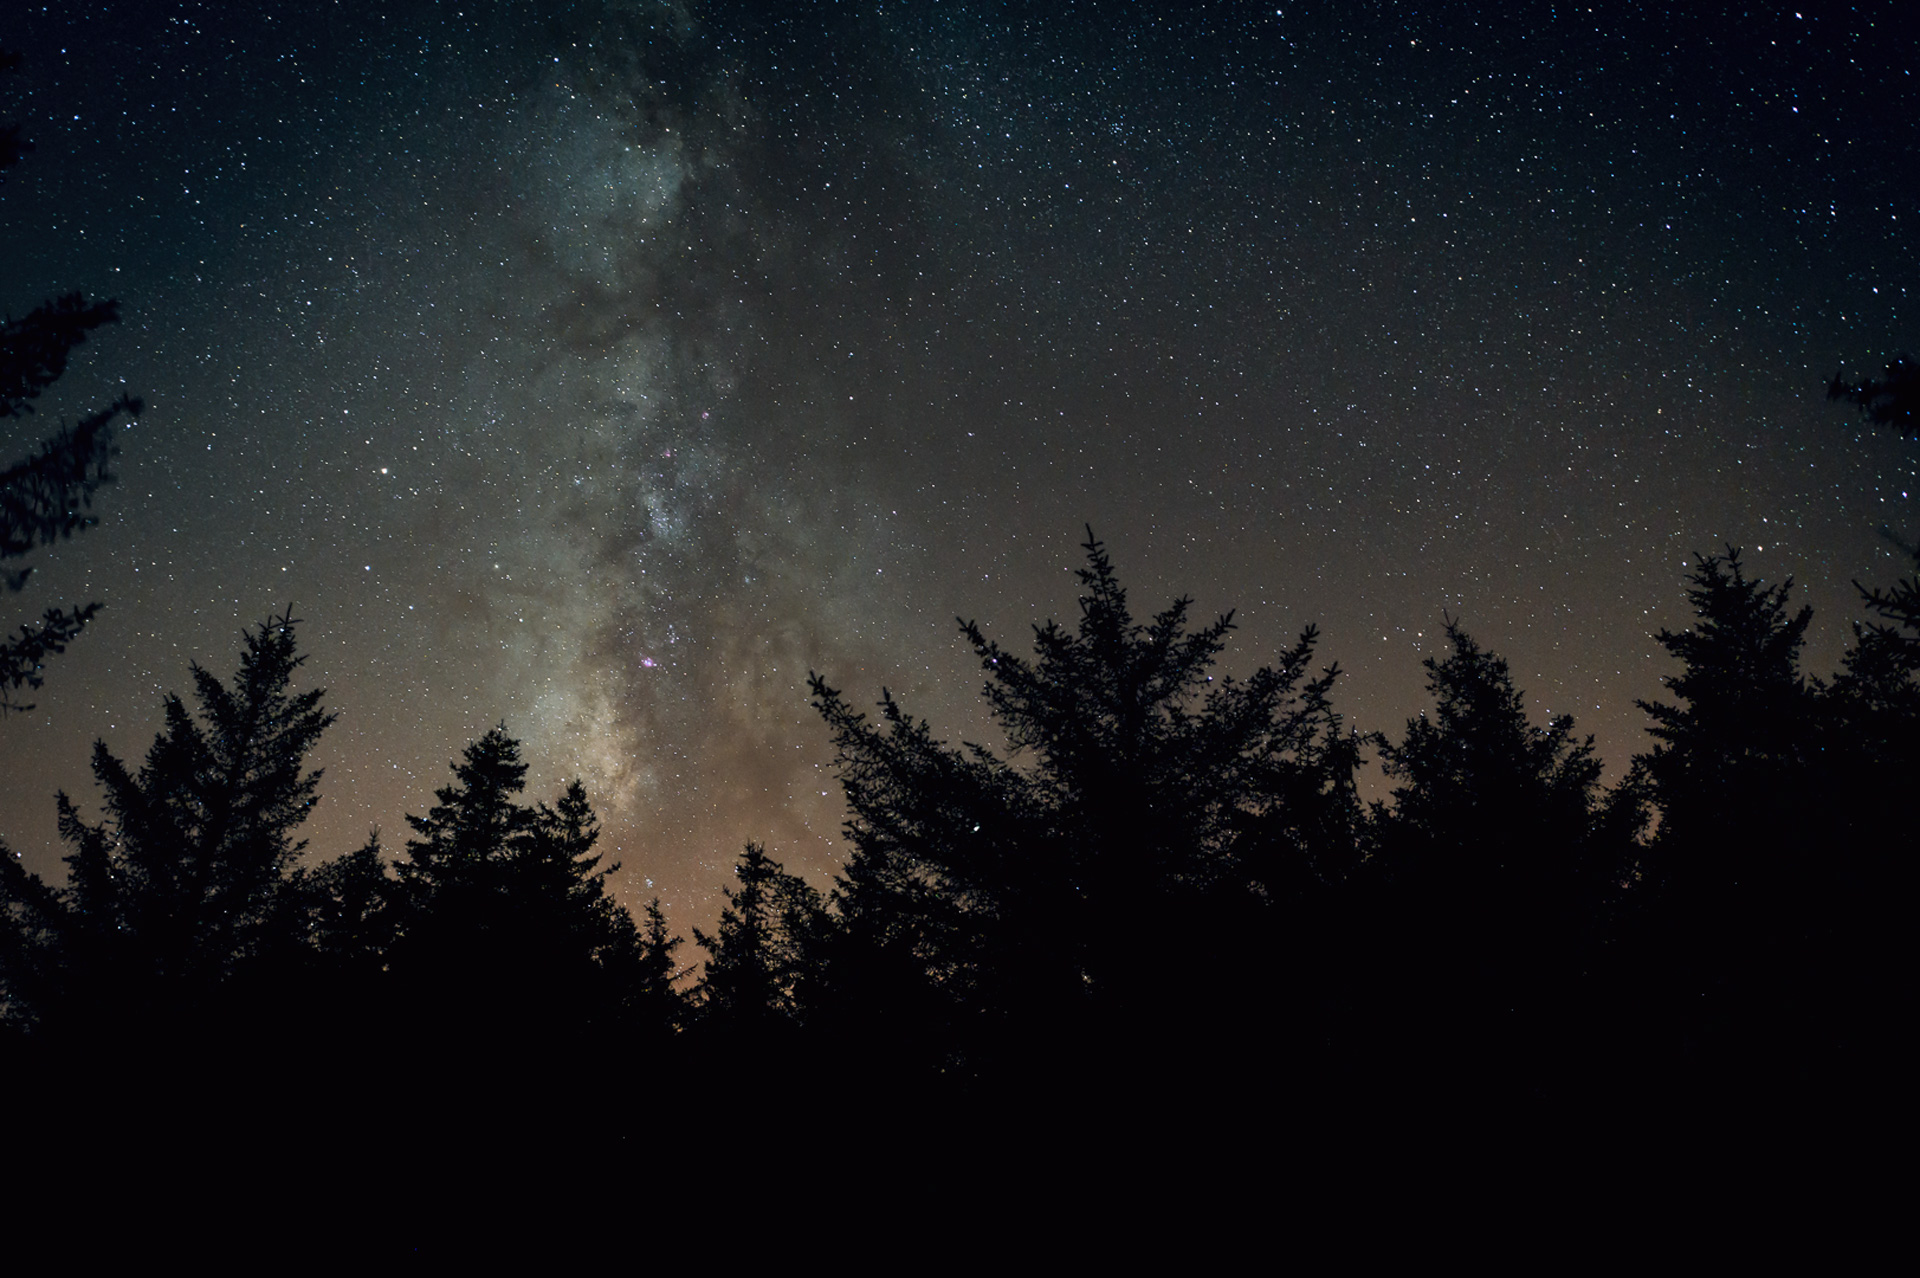 Milky Way Galaxy center over pine trees